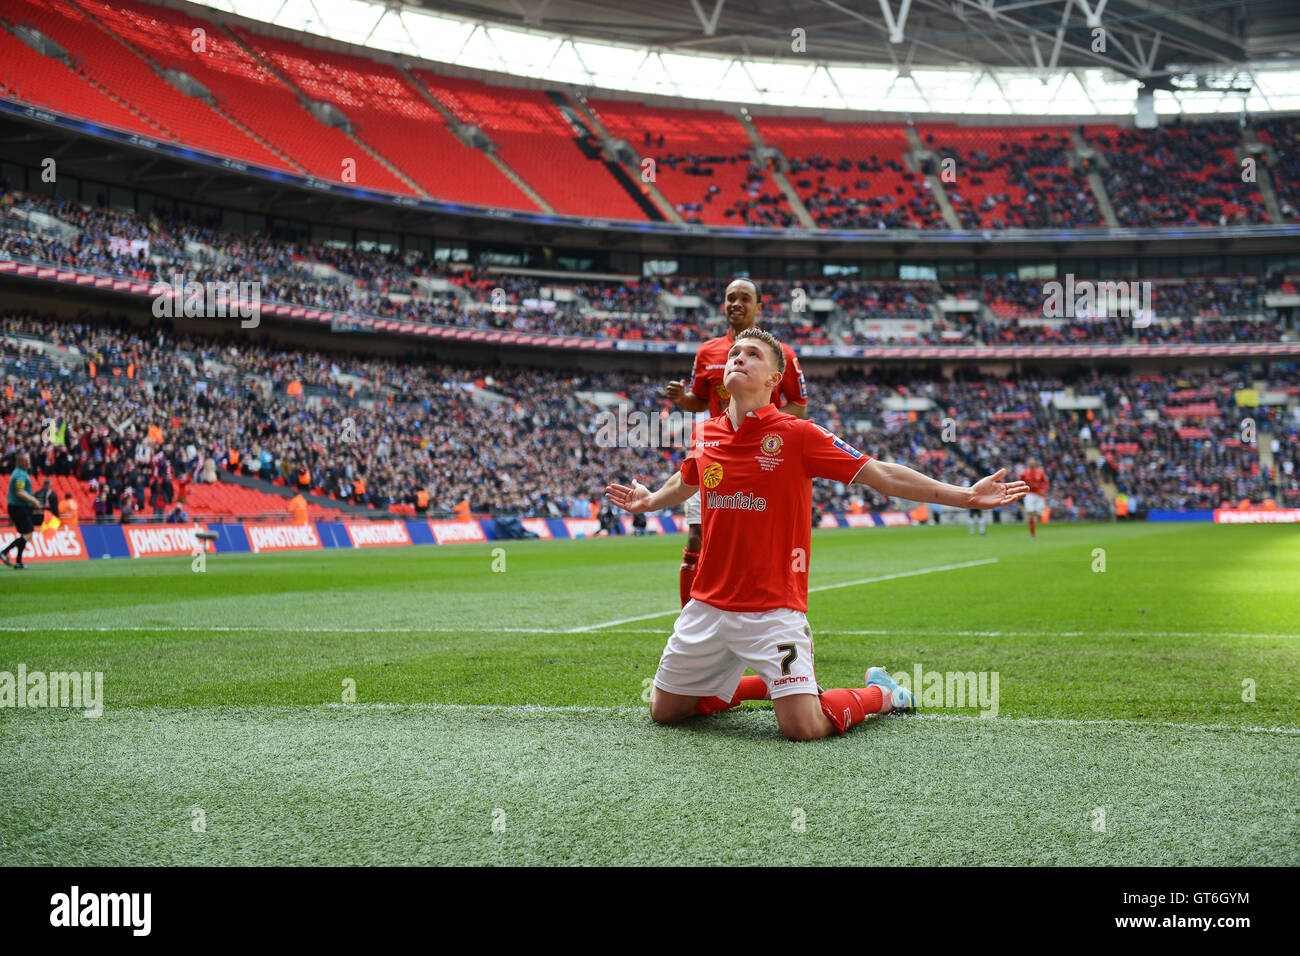 Footballer Max Clayton celebrates scoring for Crewe Alexandra in Johnstone's Paint Trophy at Wembley - Stock Image